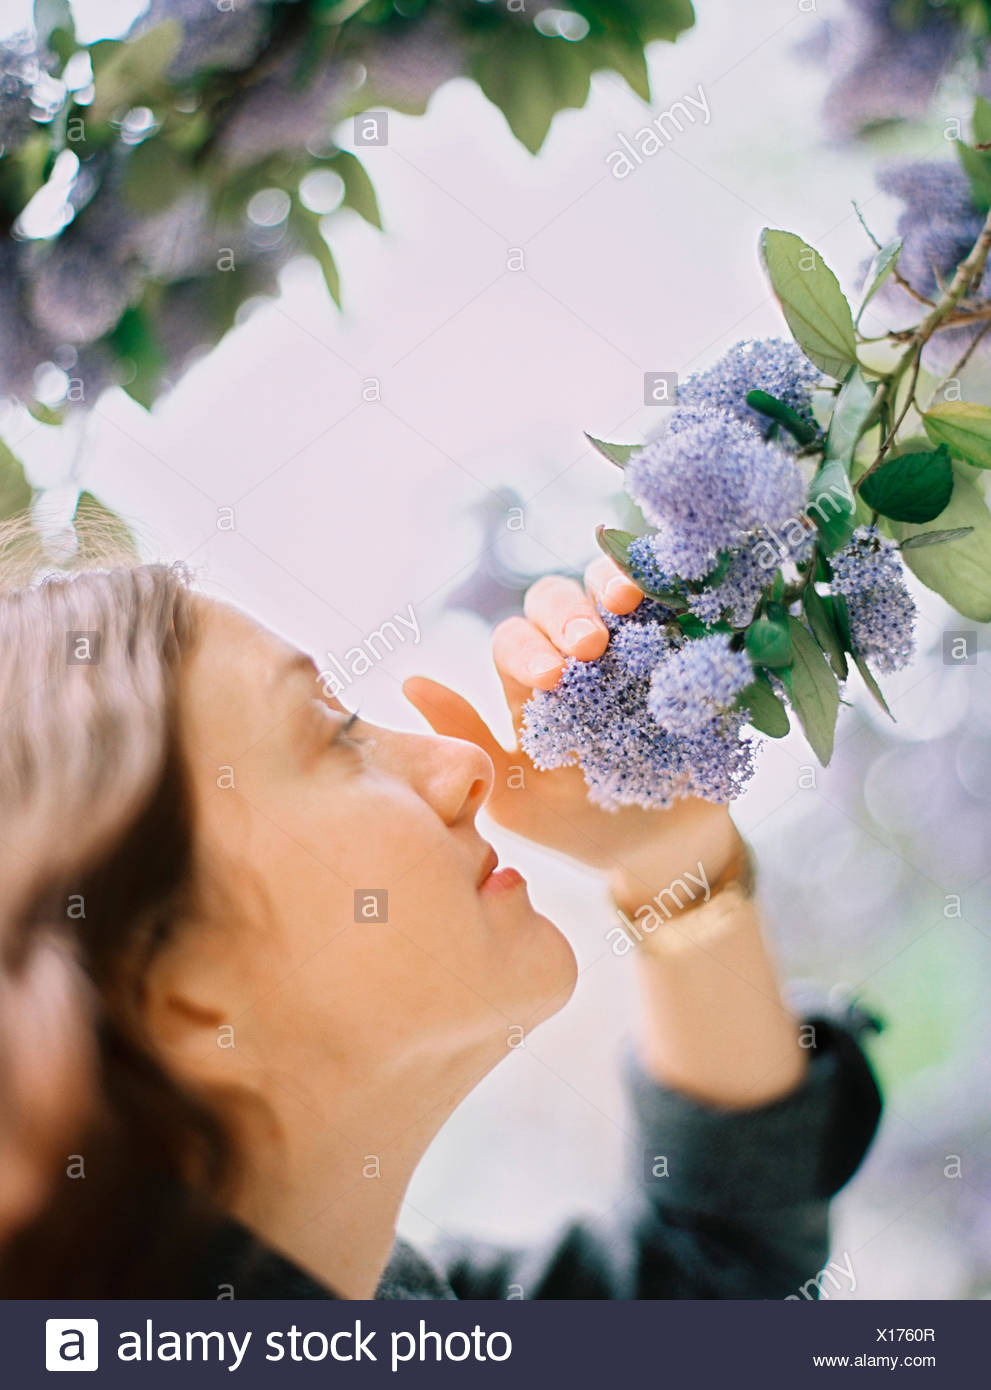 A woman pulling blue flowers towards her to inhale the scent. - Stock Image